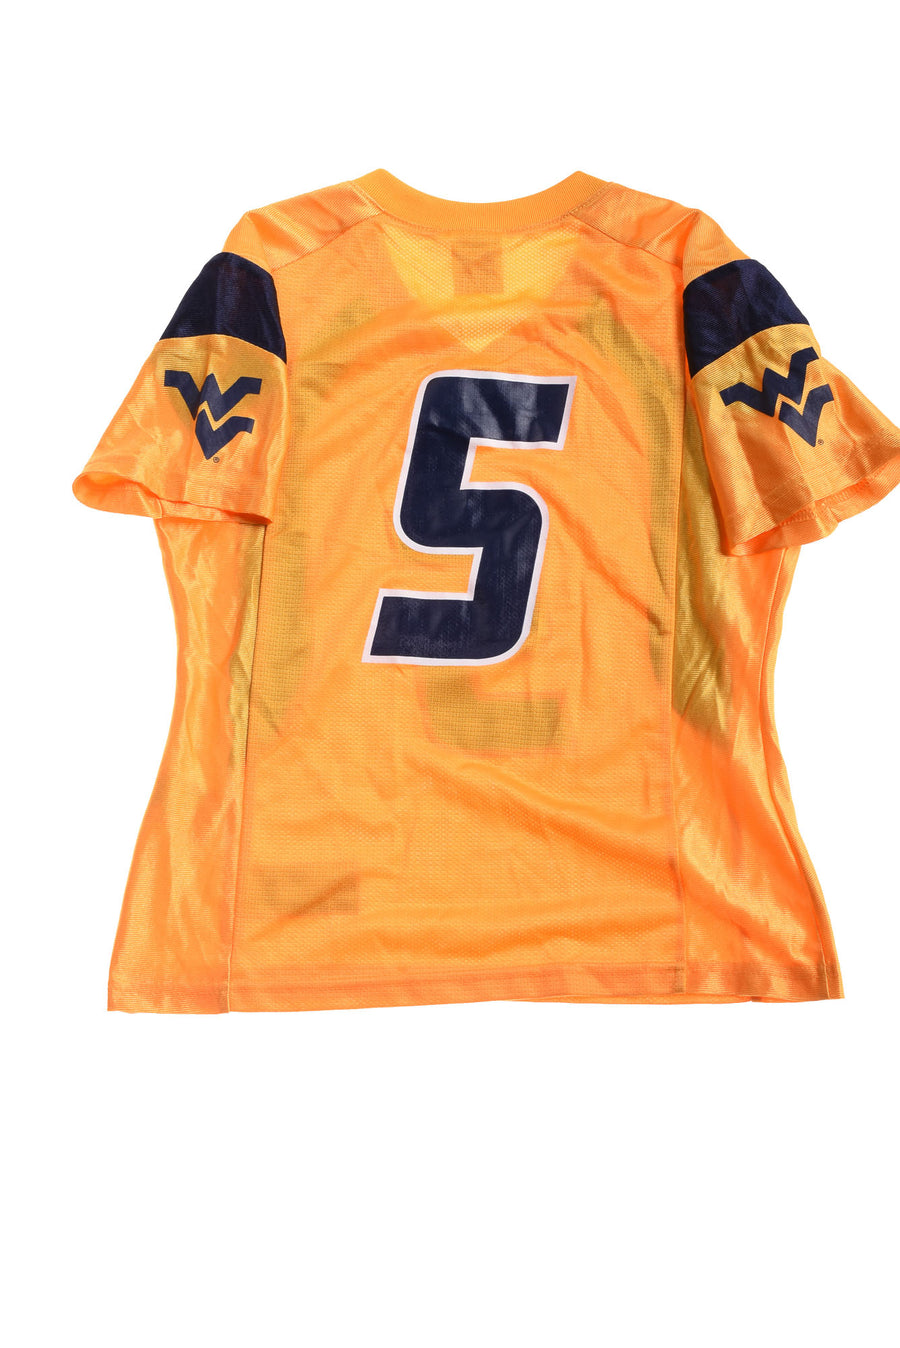 USED Nike Women's West Virginia Mountaineers Jersey Yellow & Blue X-Small